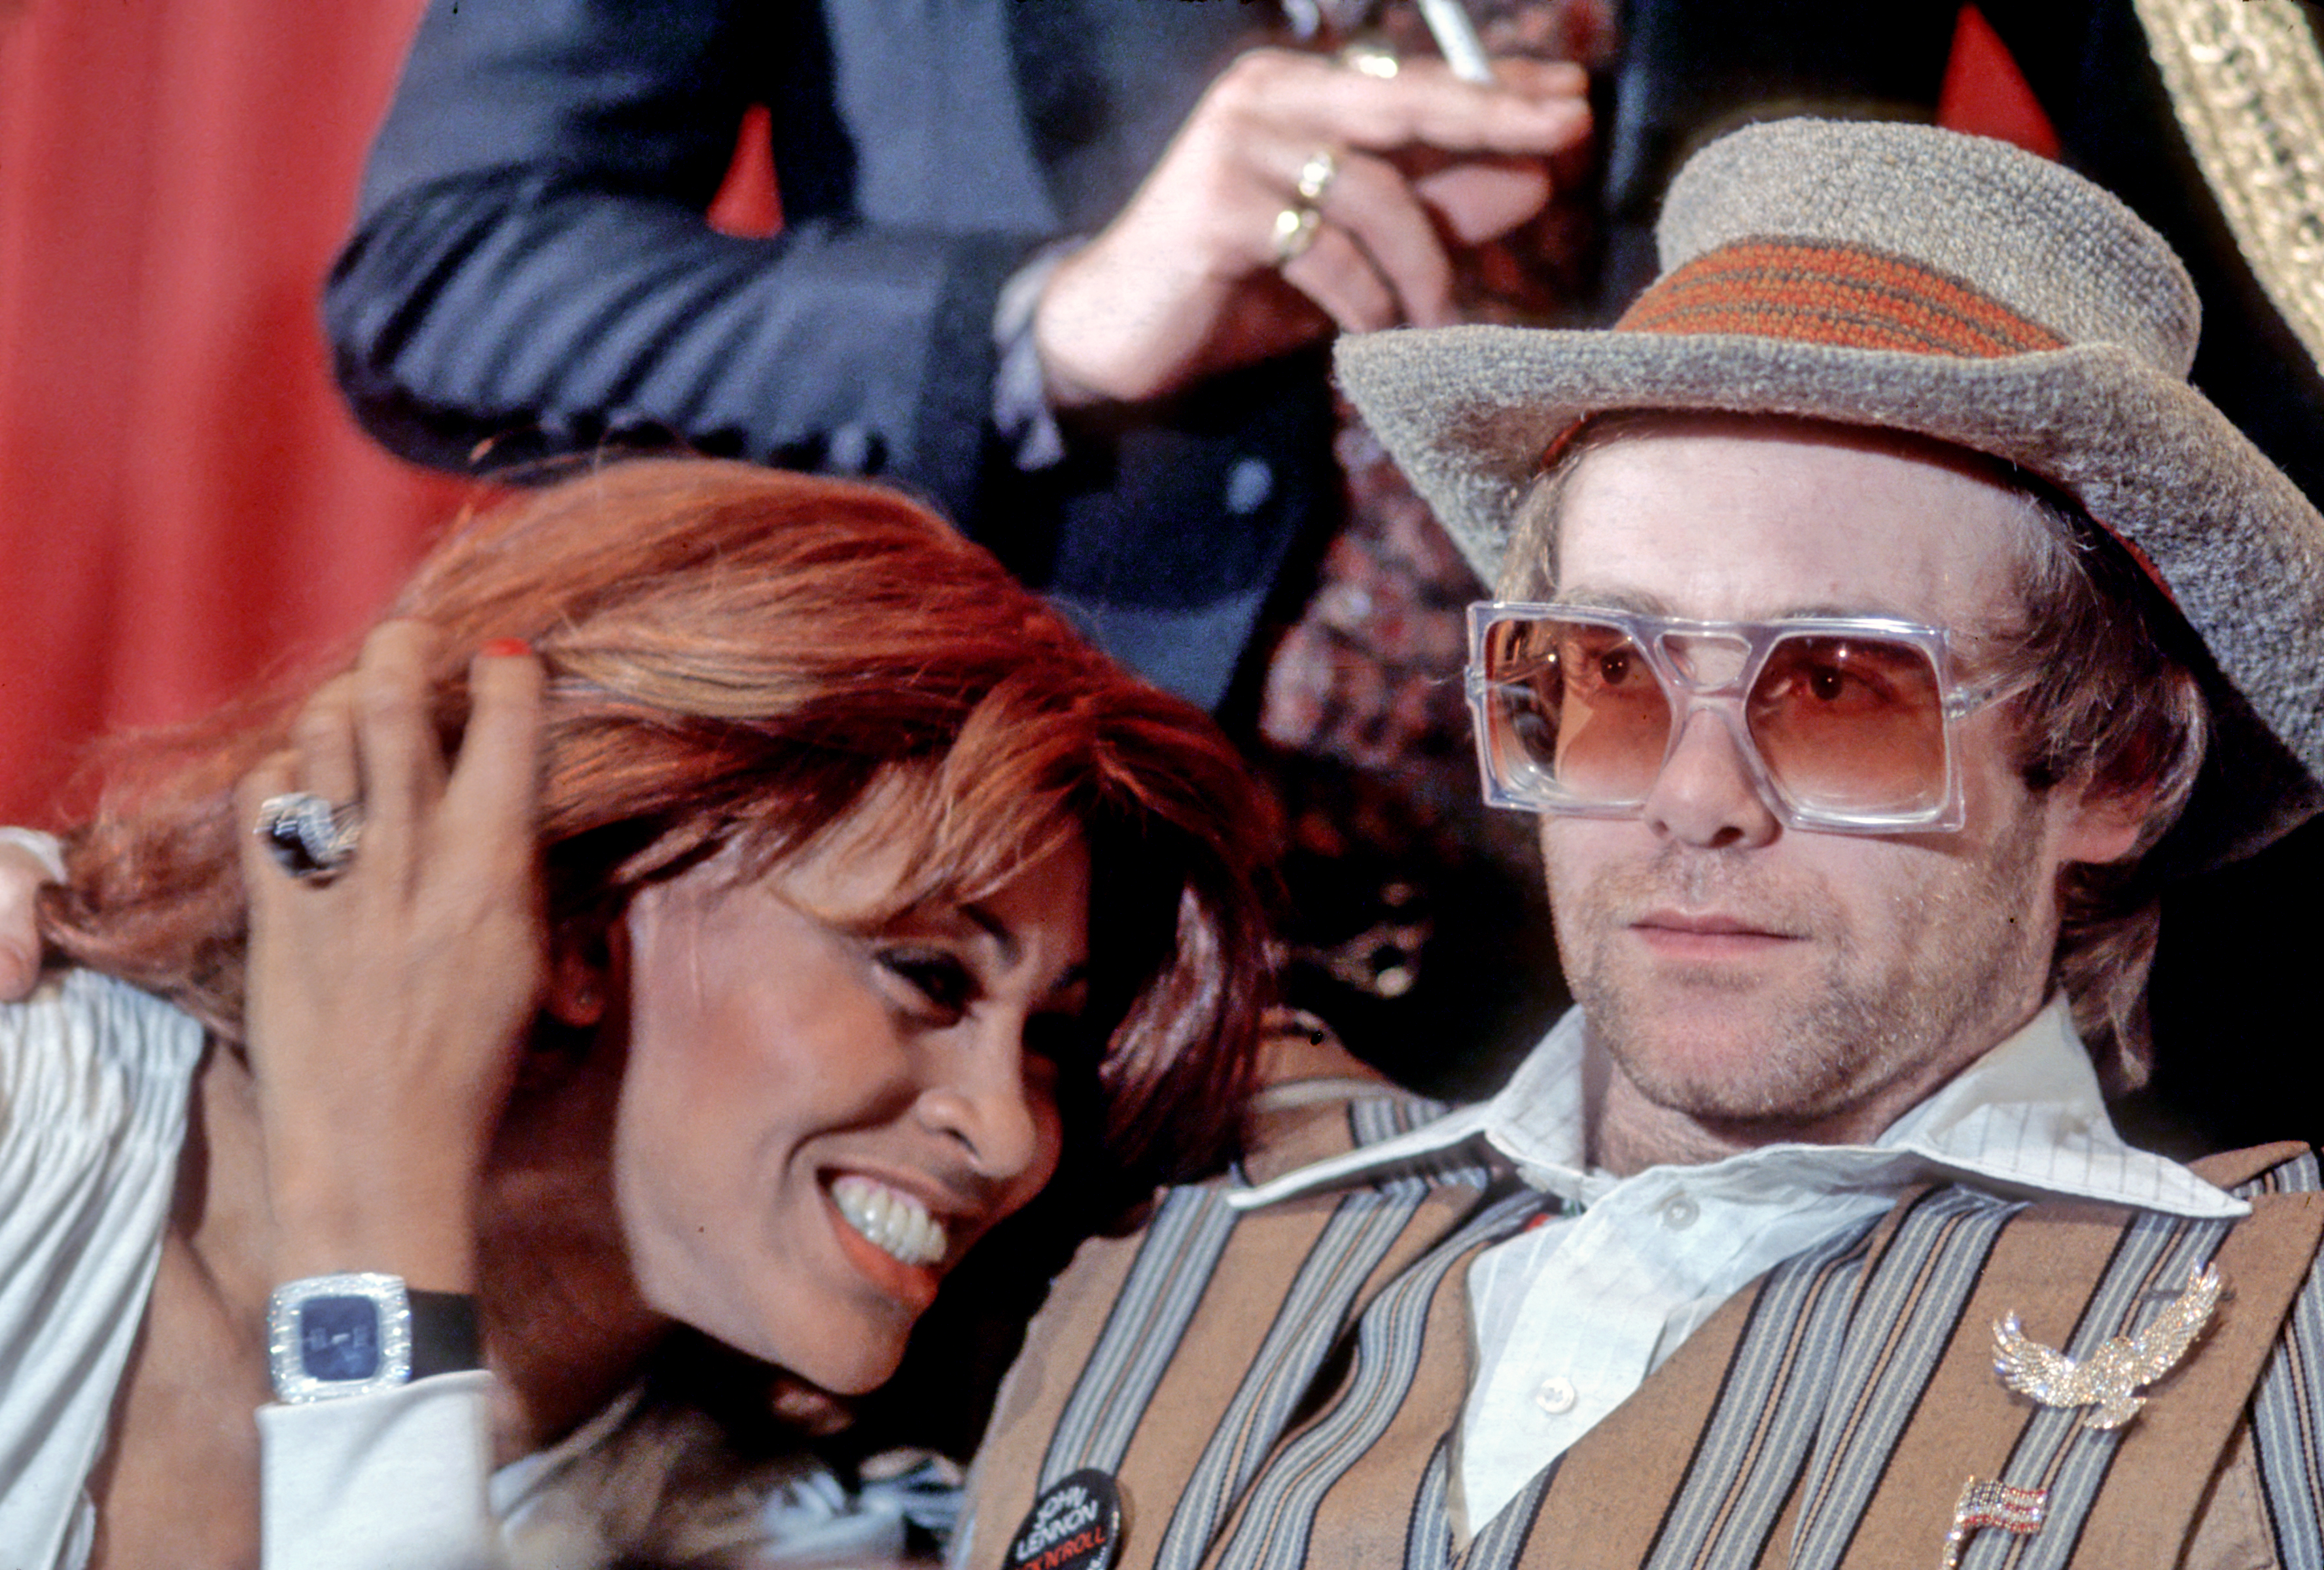 """MARCH 18: Rock and roll singer Tina Turner snuggles up to fellow performer Elton John during a press conference  for the release of the rock group """"The Who's"""" rock opera film """"Tommy"""" in which they appear on March 18, 1975. (Photo by Michael Ochs Archives/Getty Images)"""